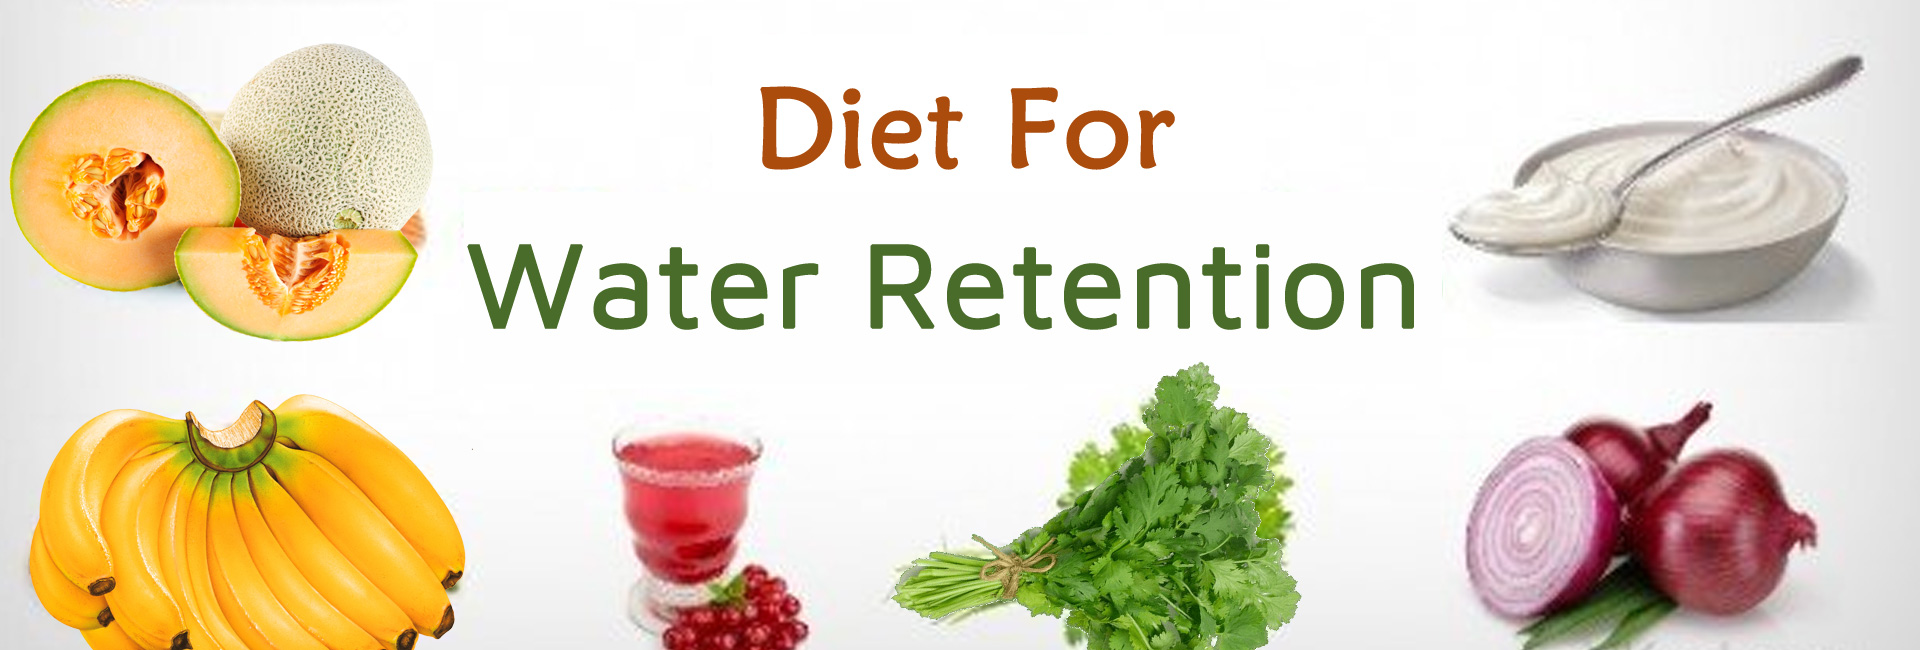 Diet For Water Retention In Winnipeg